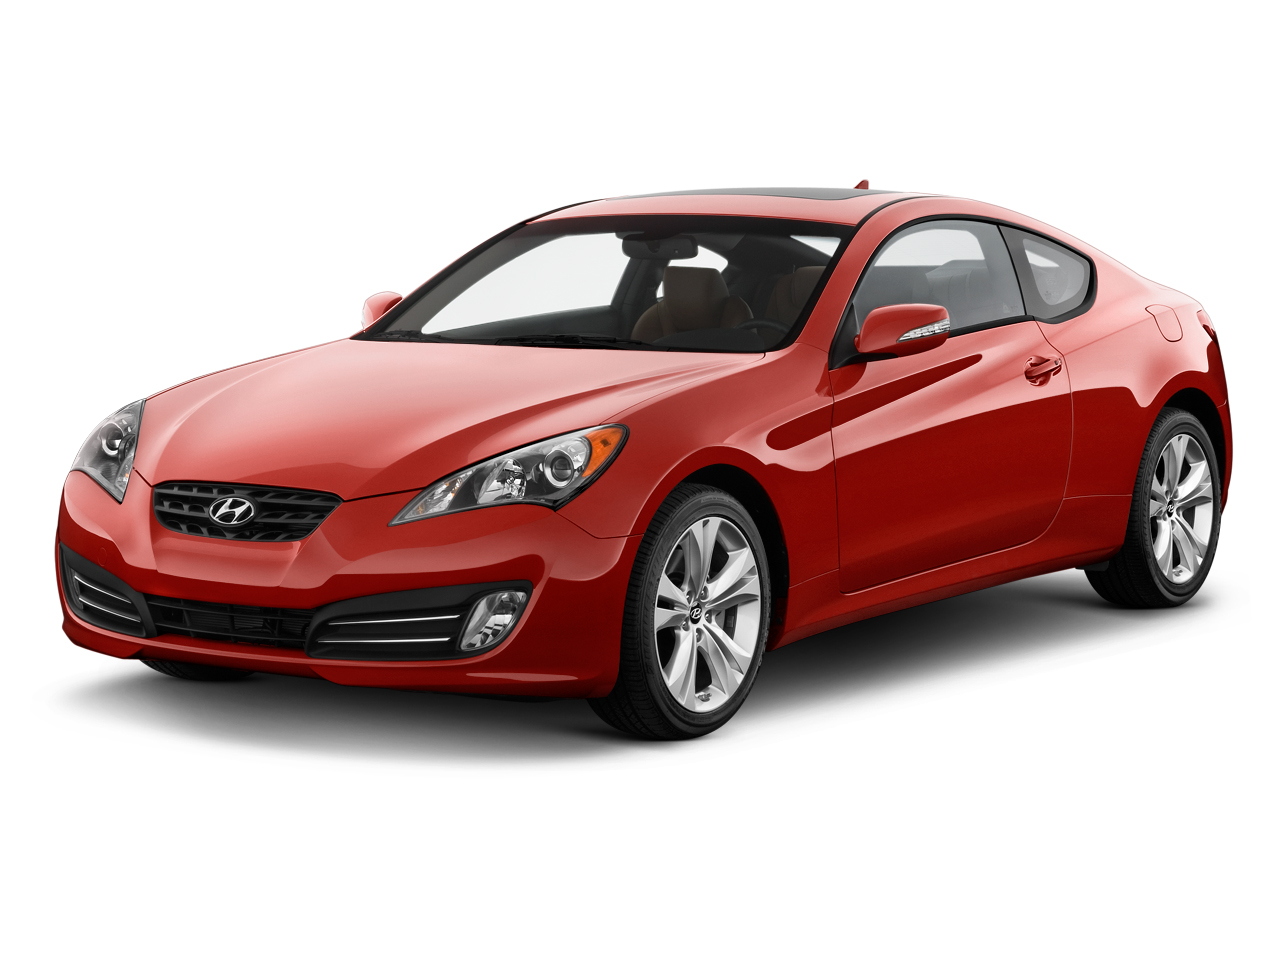 2011 Hyundai Genesis Coupe Review Ratings Specs Prices